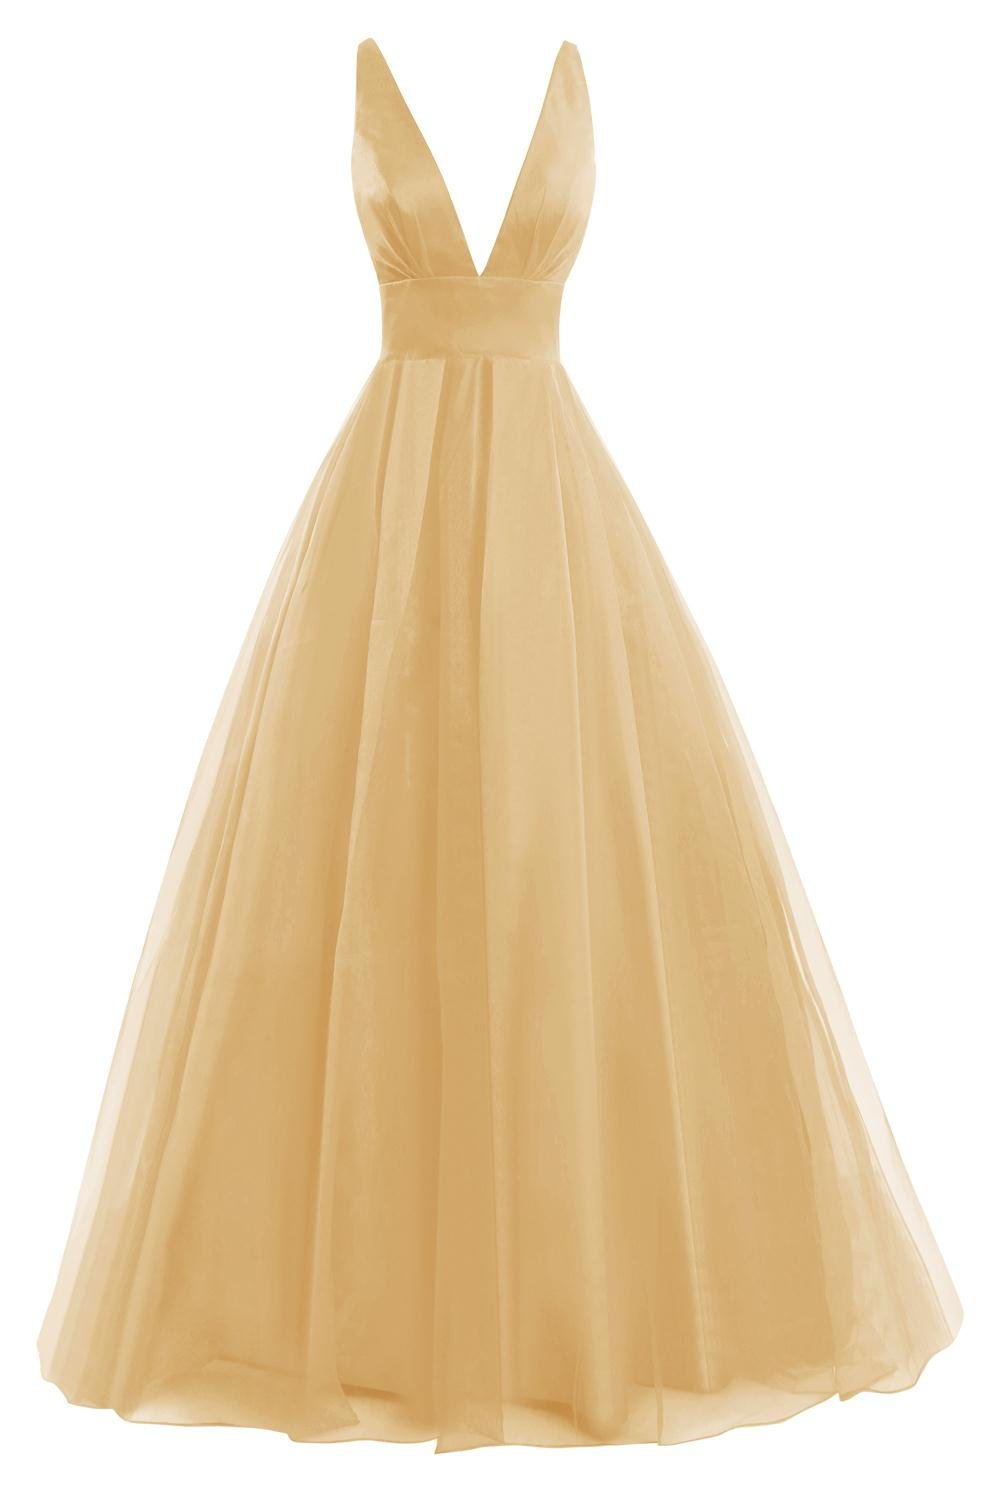 Bess Bridal Women's Tulle Deep V Neck Prom Dress Formal Evening Gowns Gold